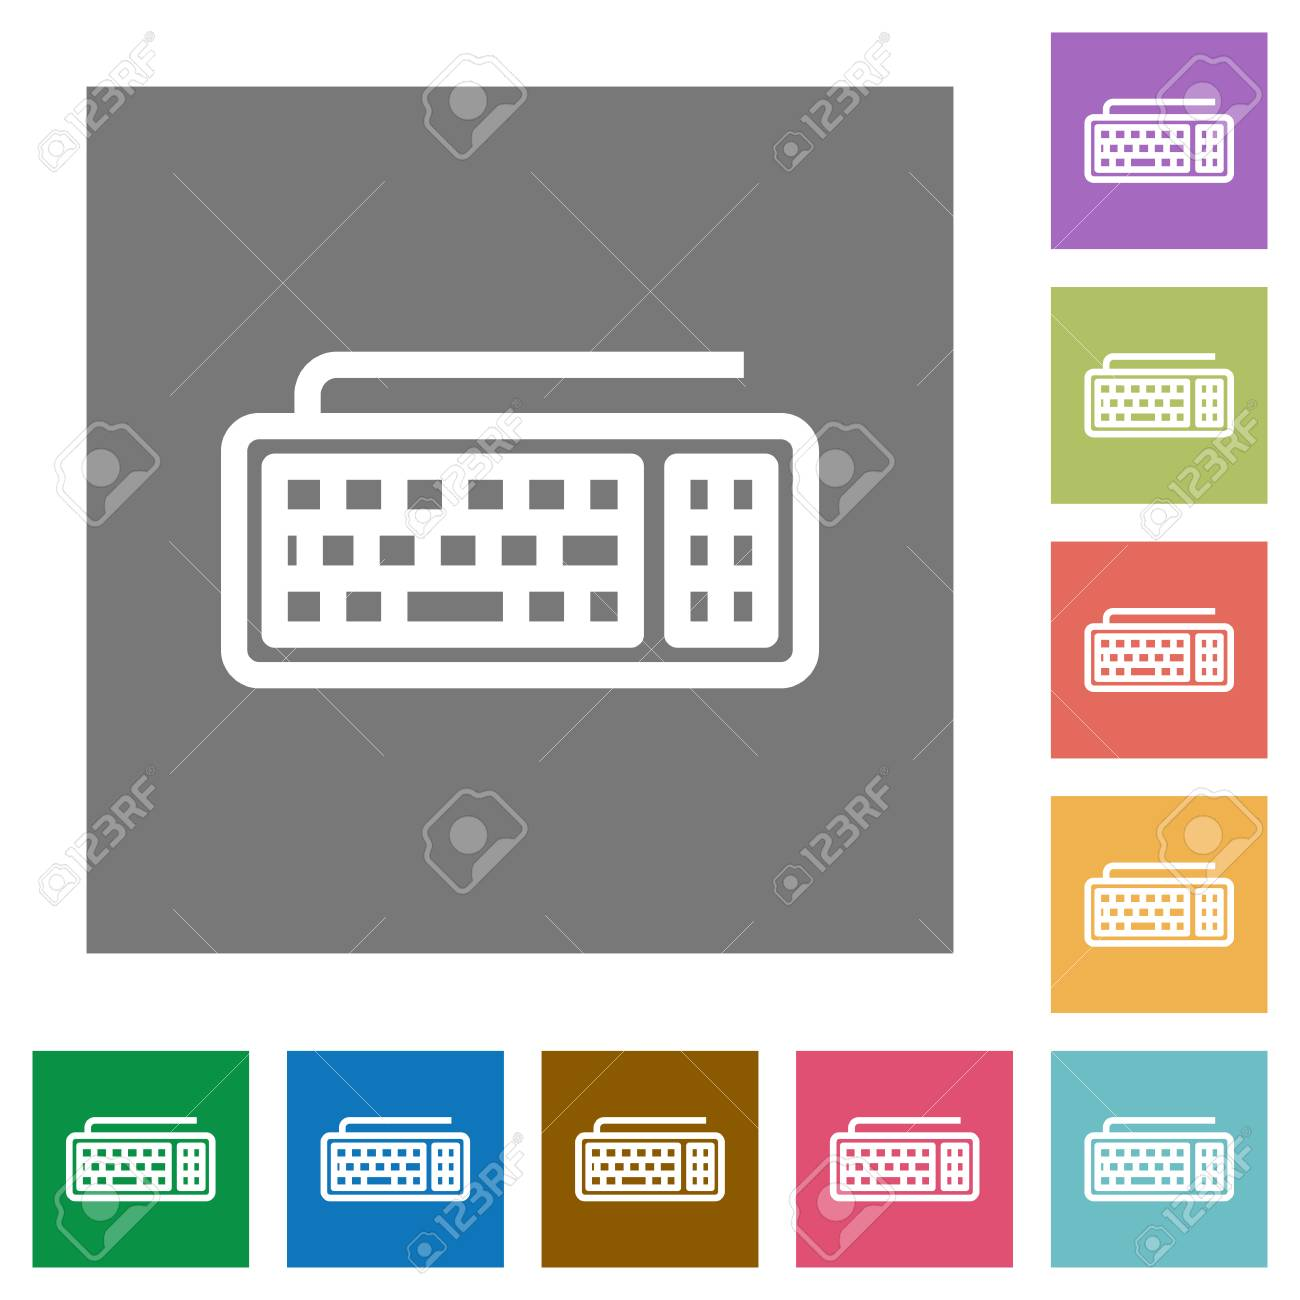 Computer keyboard flat icon set on color square background